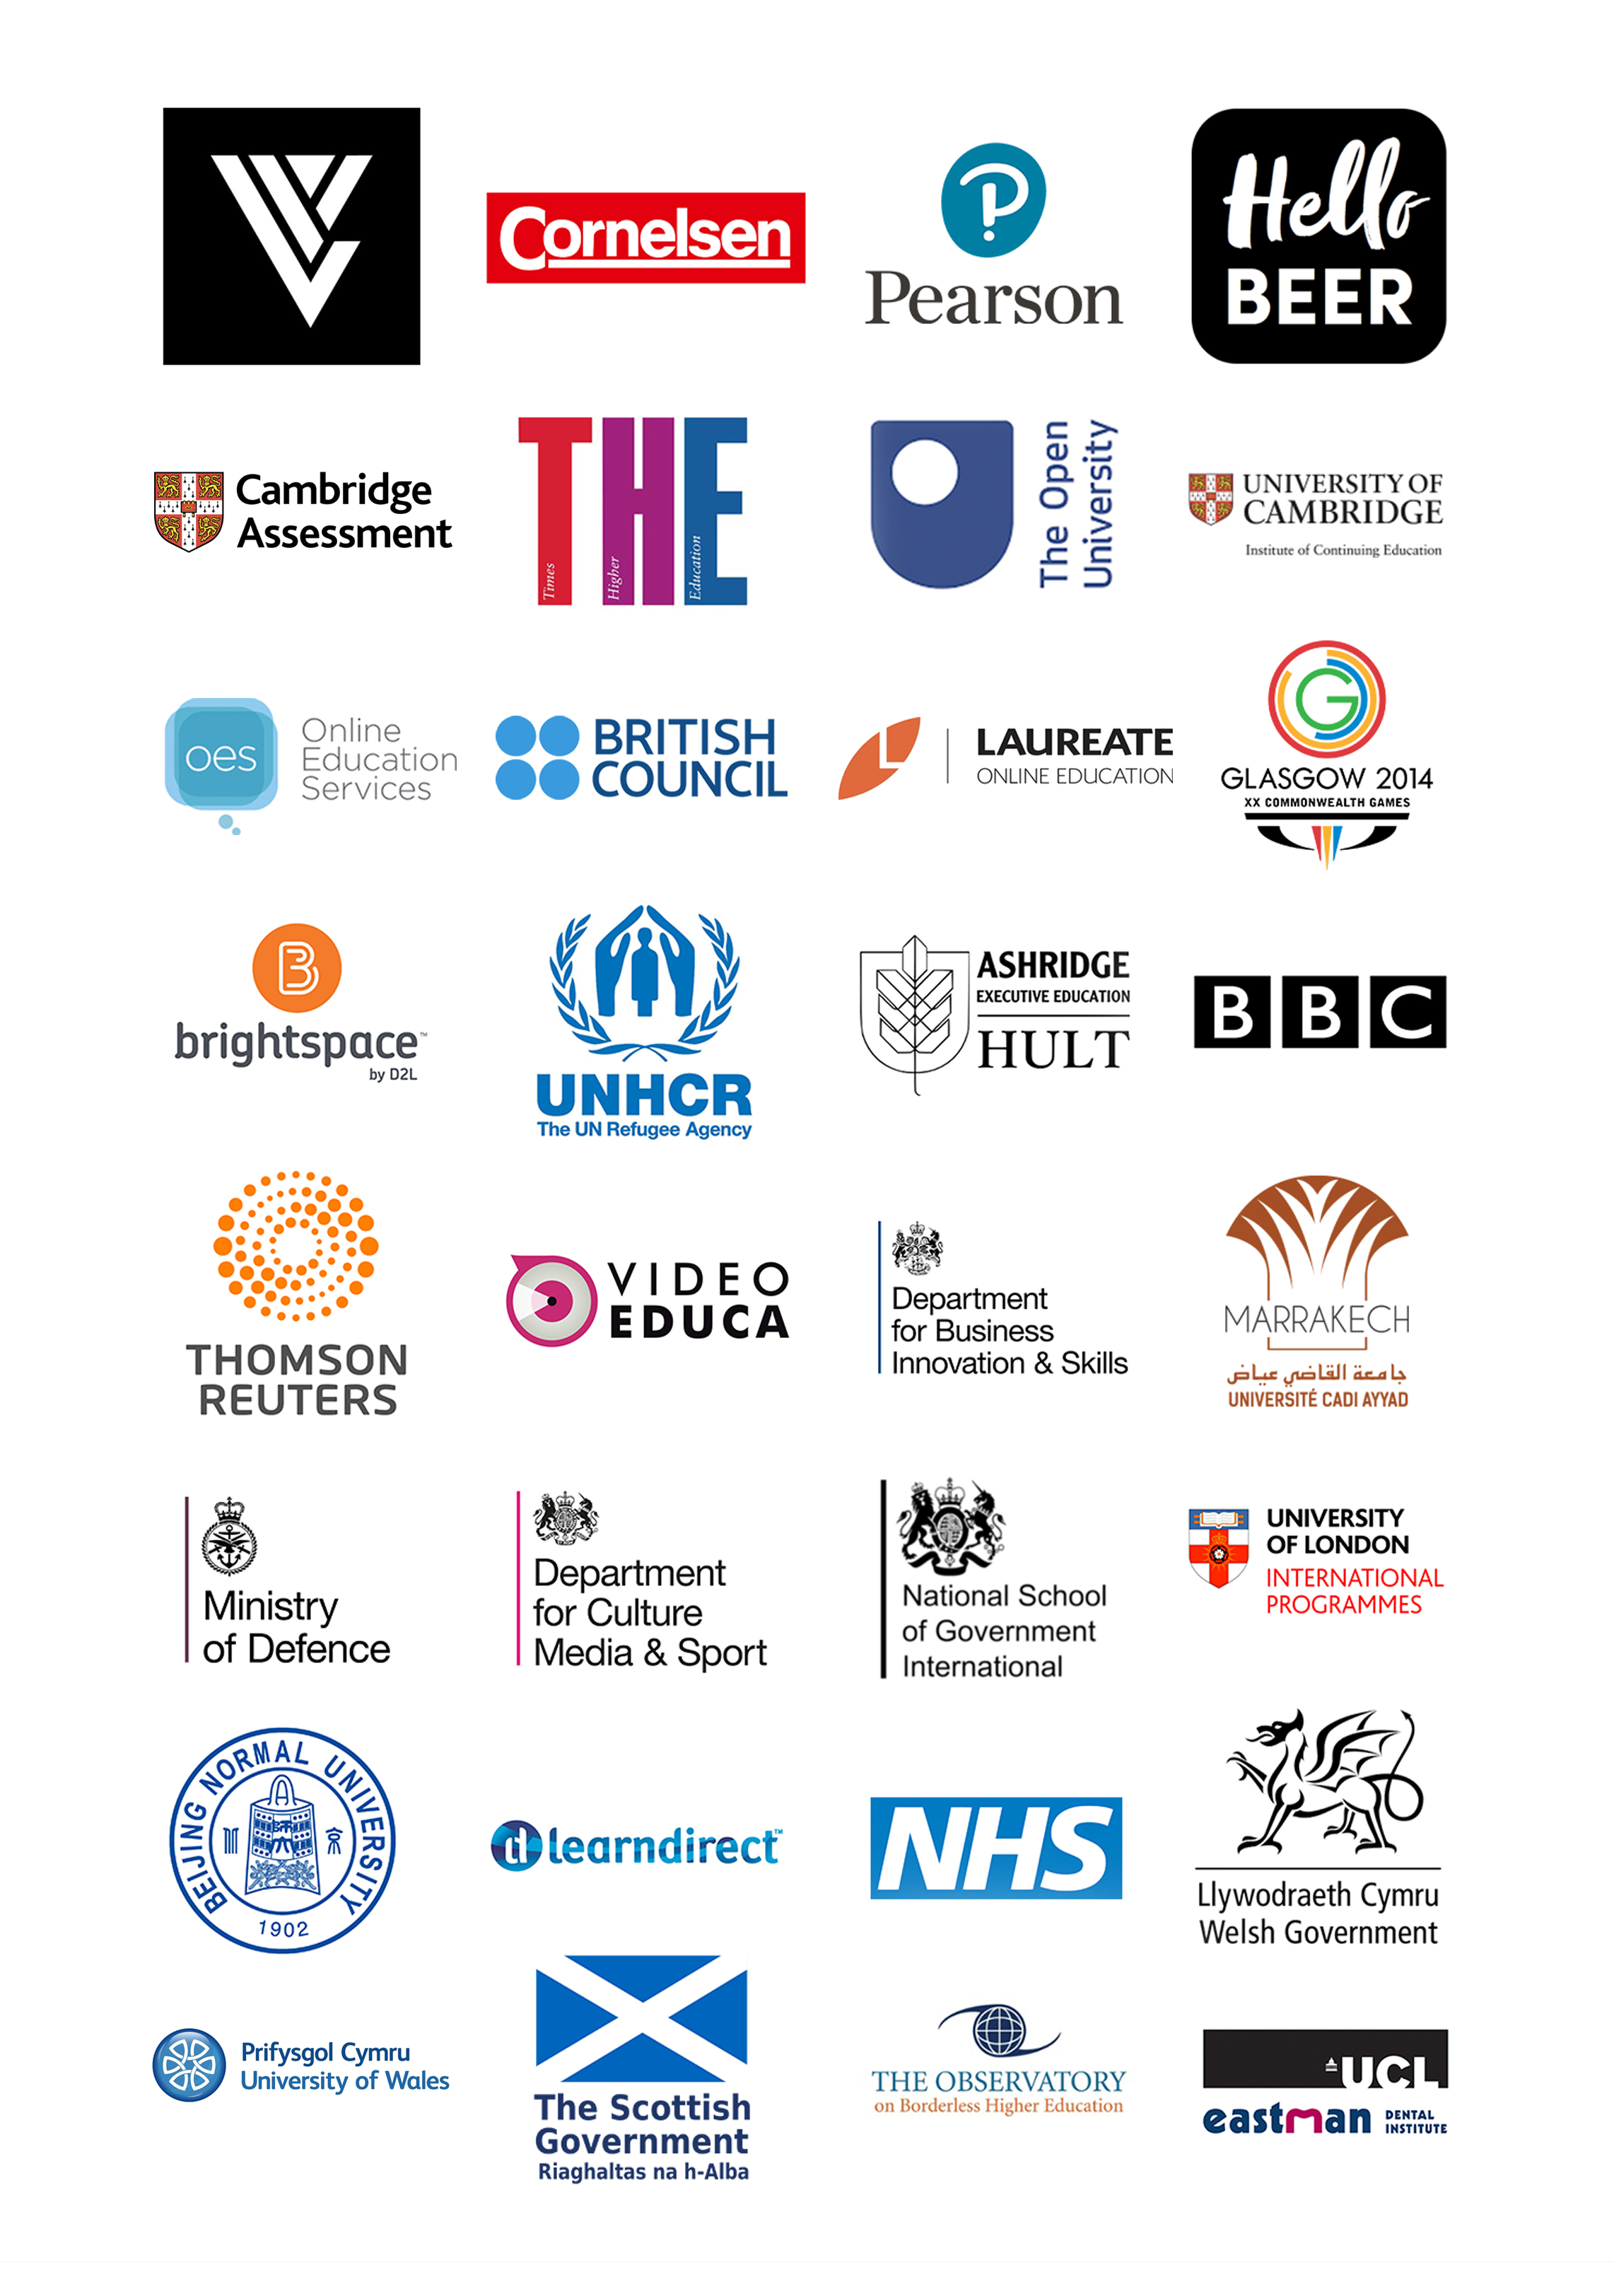 CLIENTS INCLUDE BBC, PEARSON, UNIVERSITY OF CAMBRIDGE AND THE UNIVERSITY OF LONDON